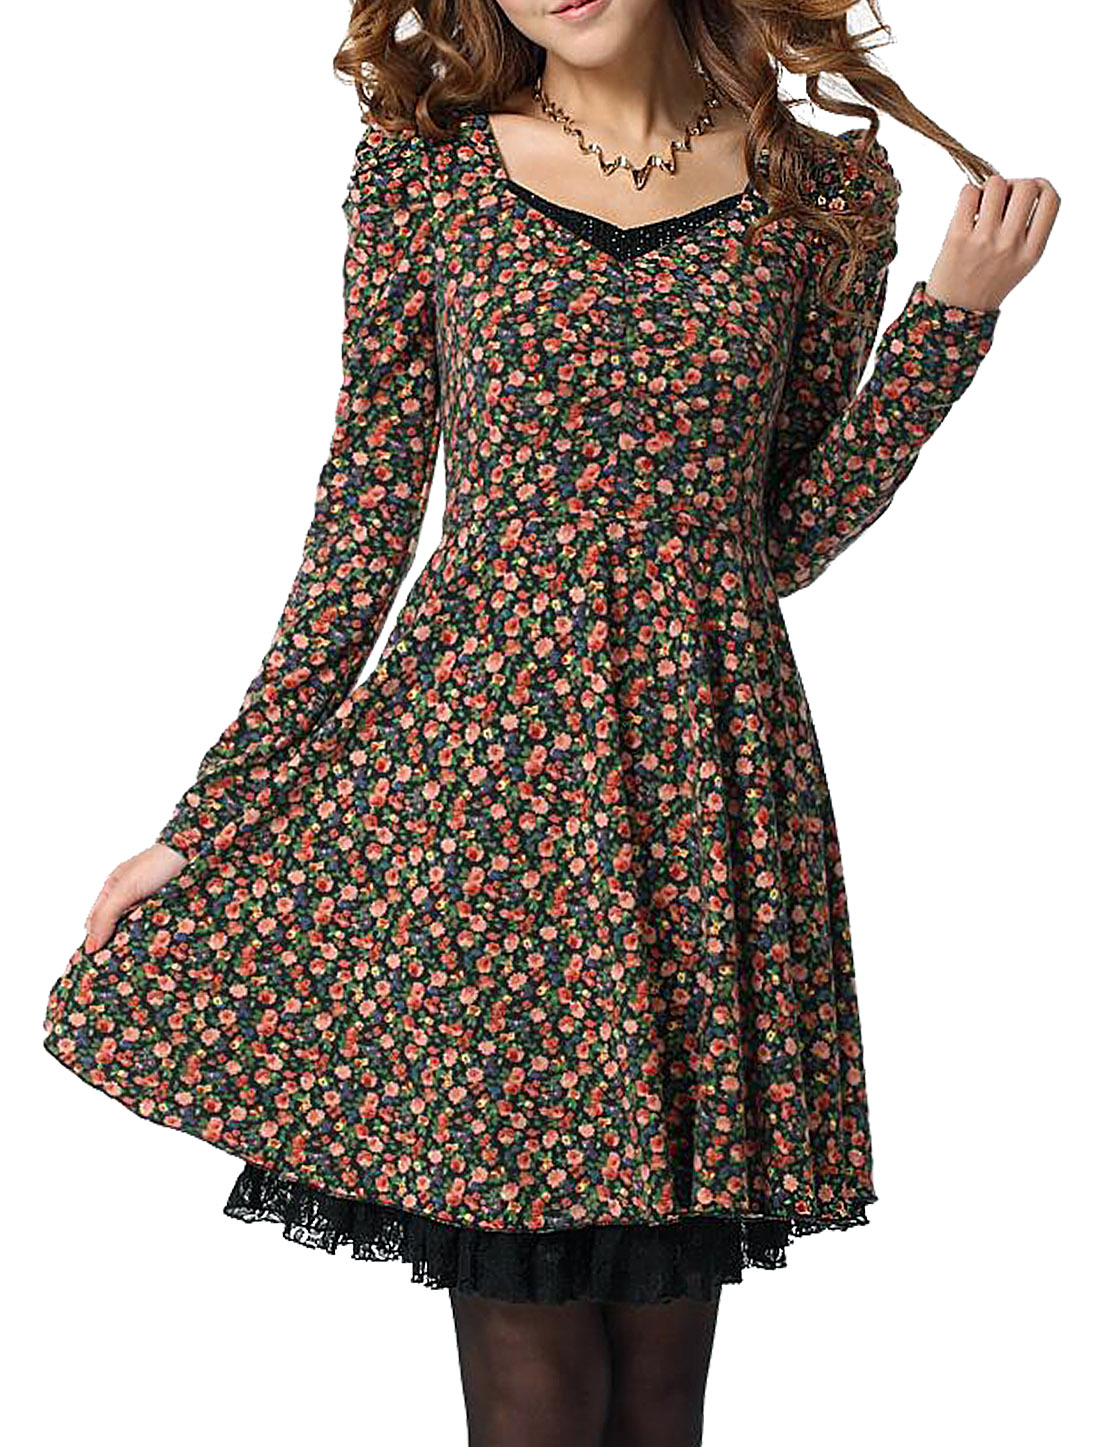 Lady V Neck Long Puff Sleeve Floral Prints Zipped Side Dress Cognac Green M